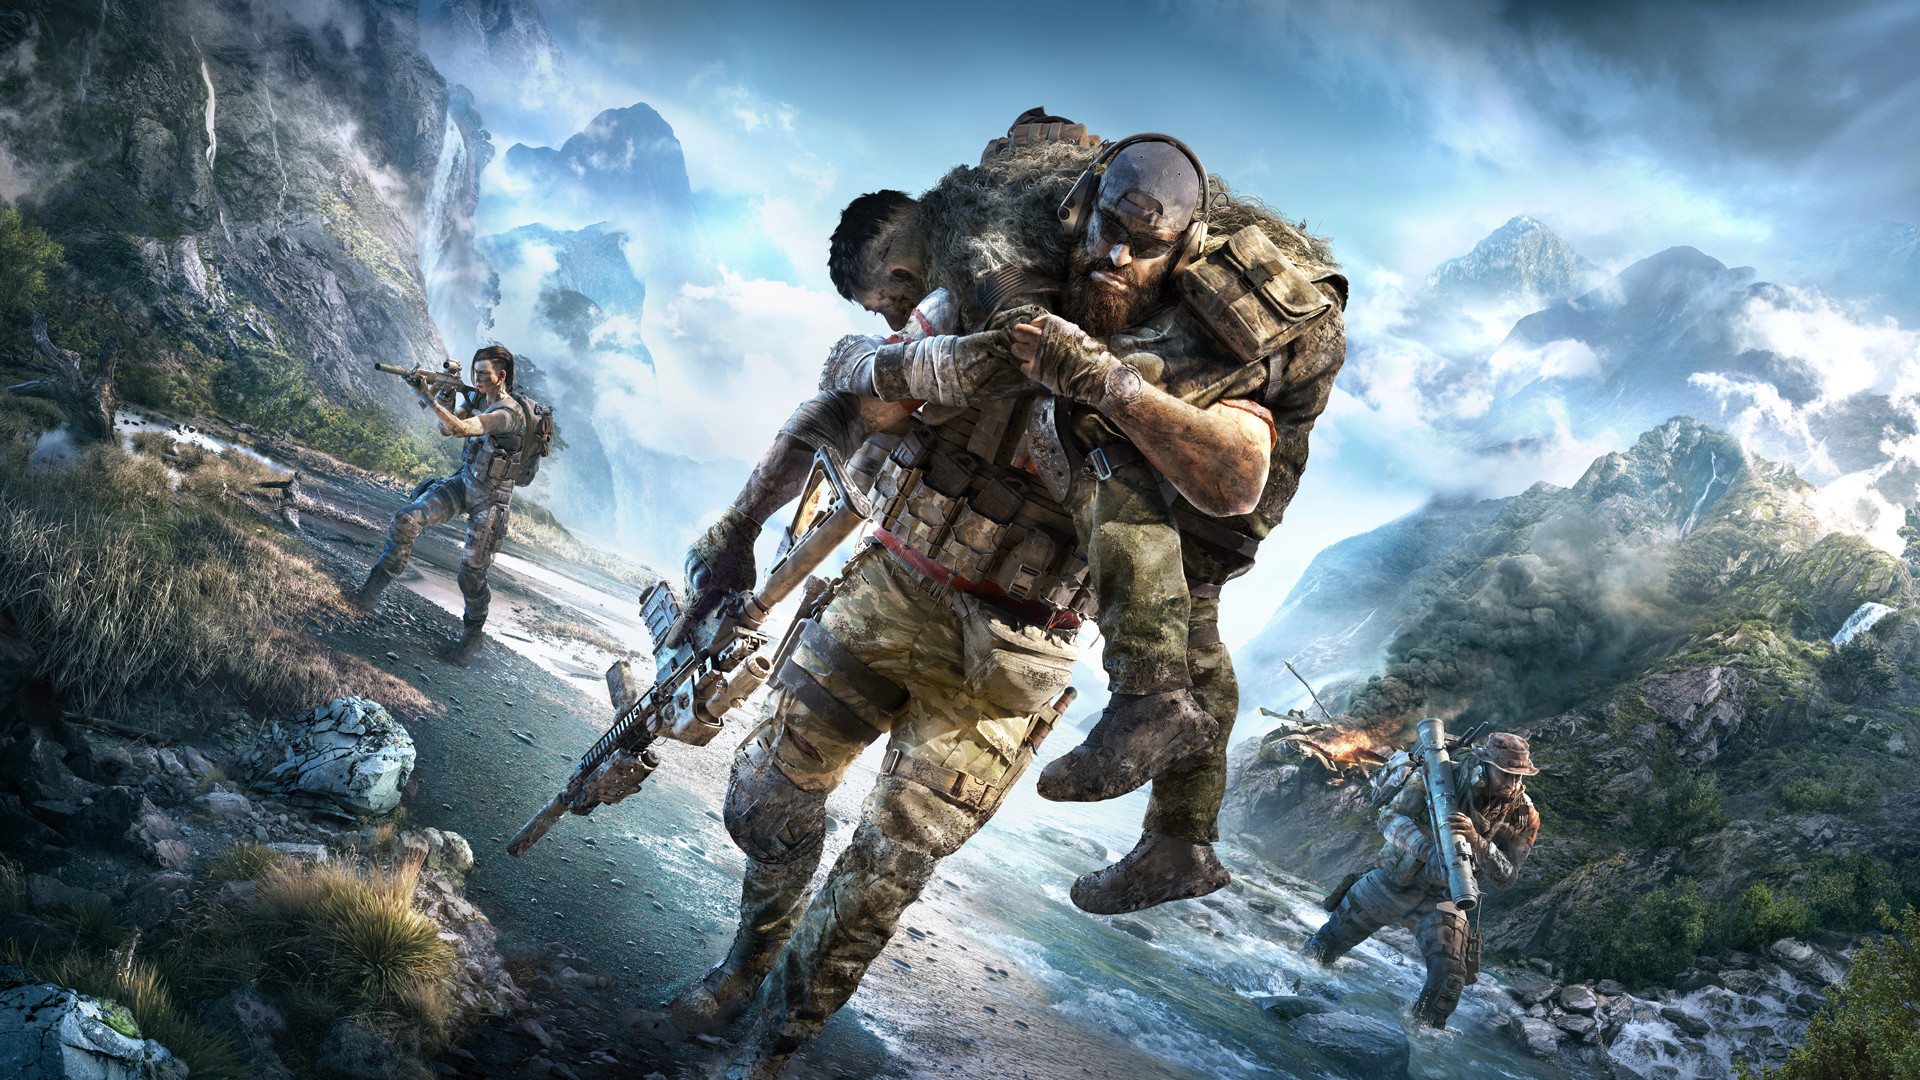 E3 2019: Tom Clancy's Ghost Recon Breakpoint Refocuses the Series on Spec Ops